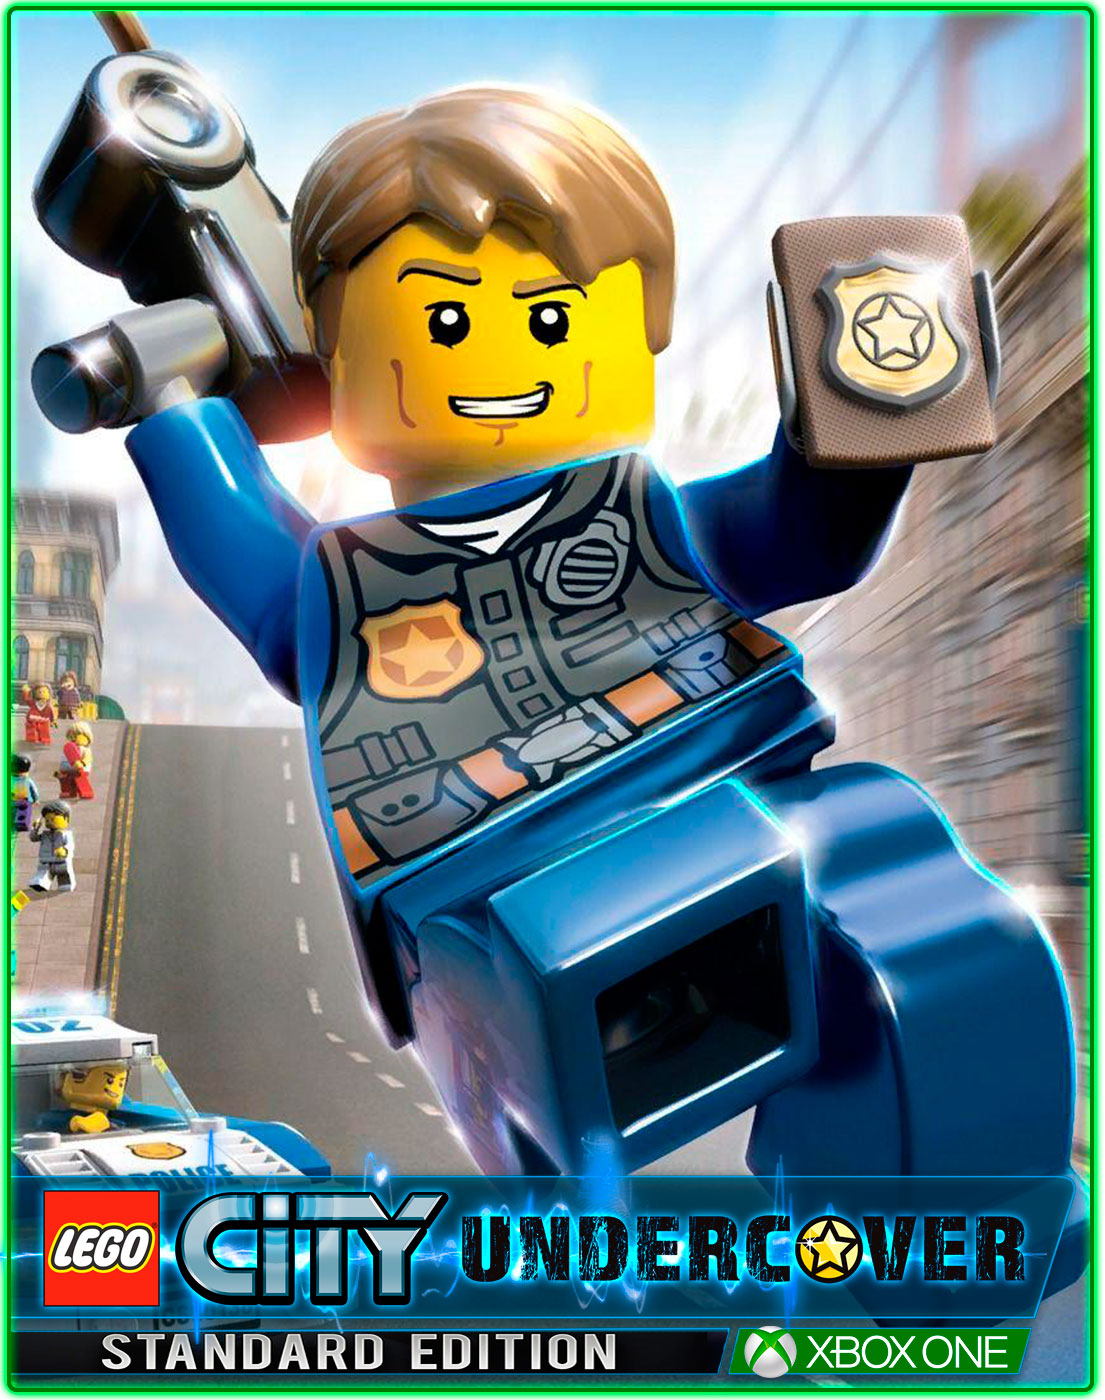 Buy LEGO CITY Undercover(XBOX ONE)🎮👻 and download